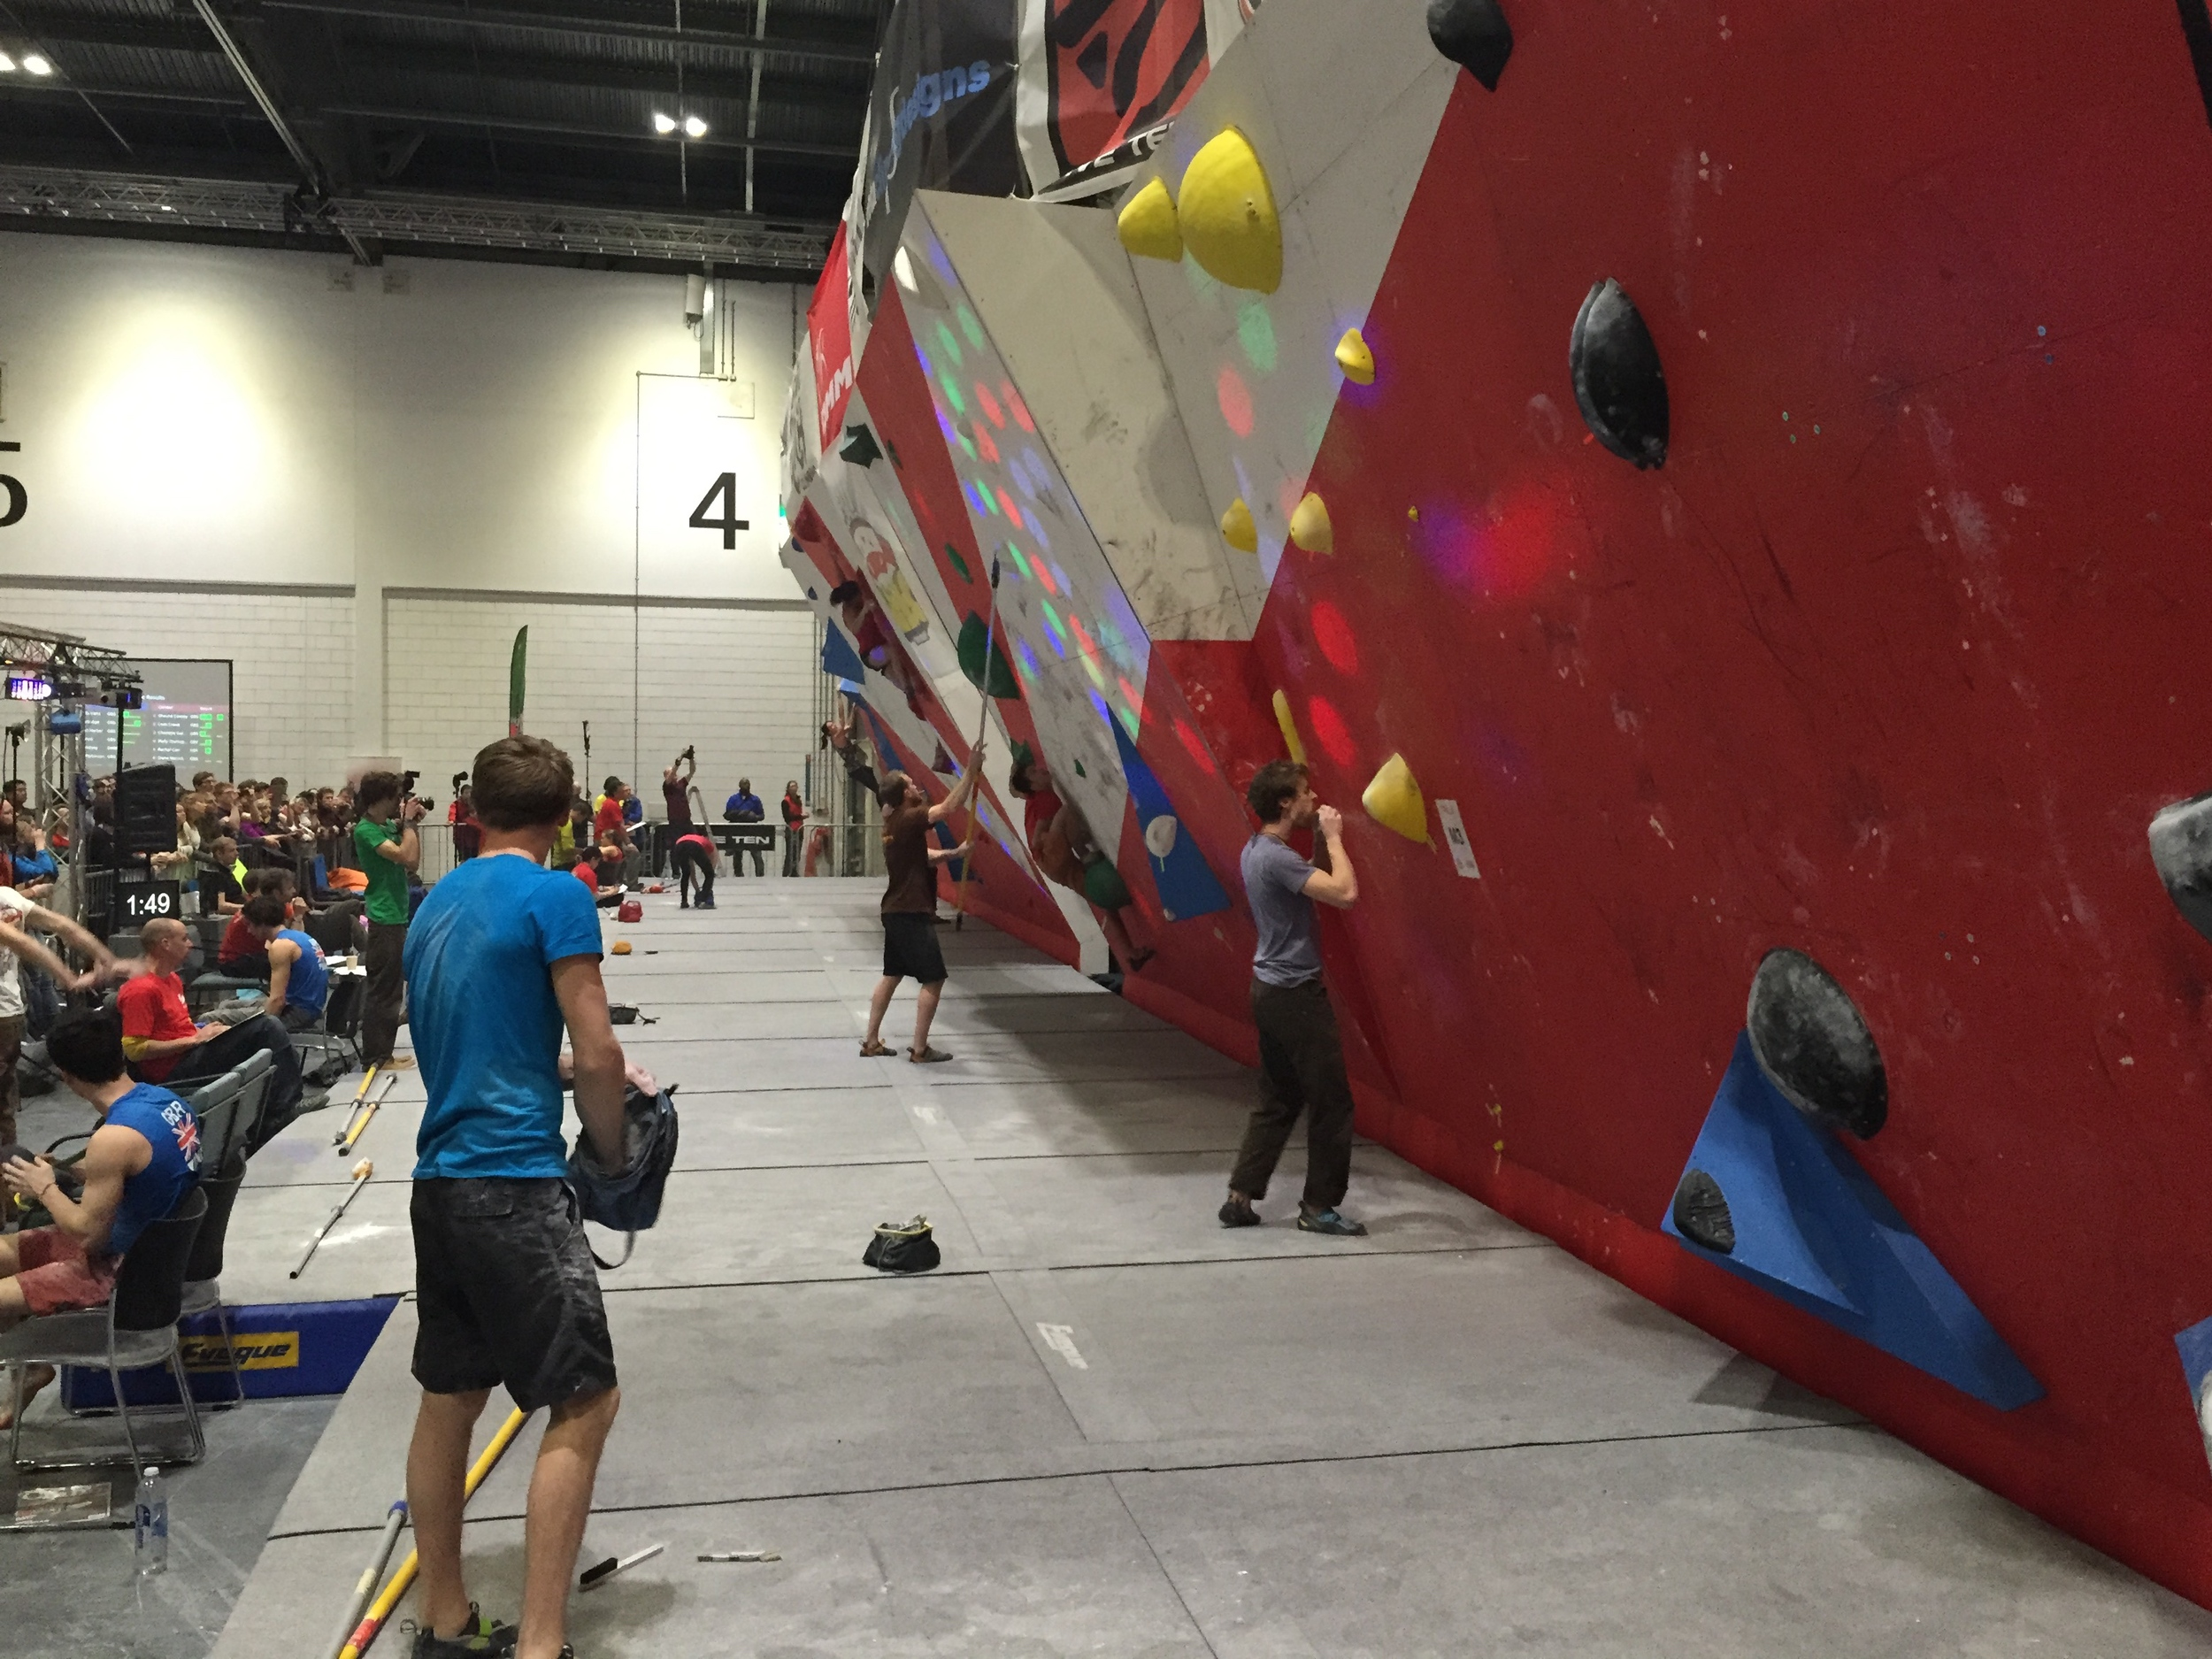 The British climbing team doing their thing.